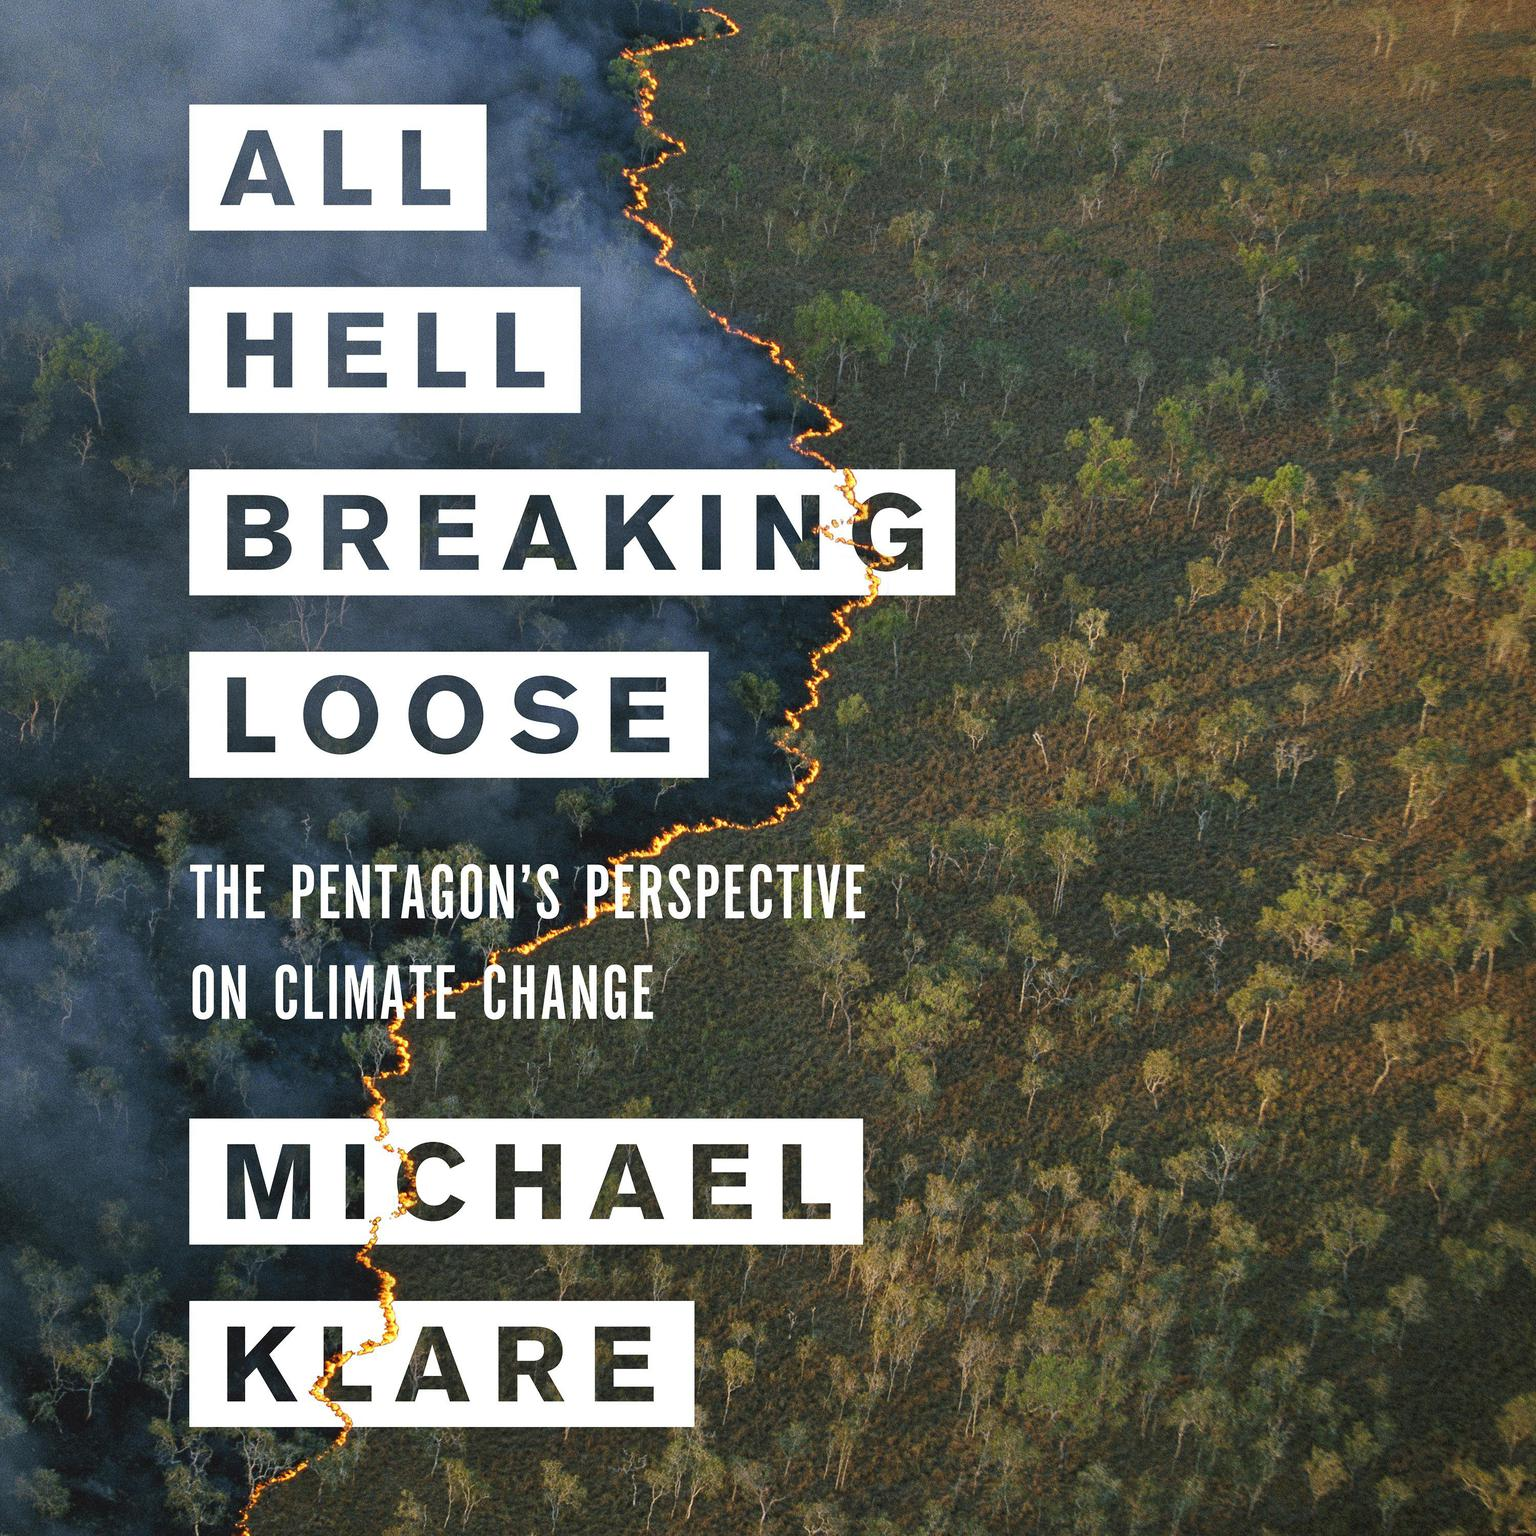 All Hell Breaking Loose: The Pentagons Perspective on Climate Change Audiobook, by Michael Klare